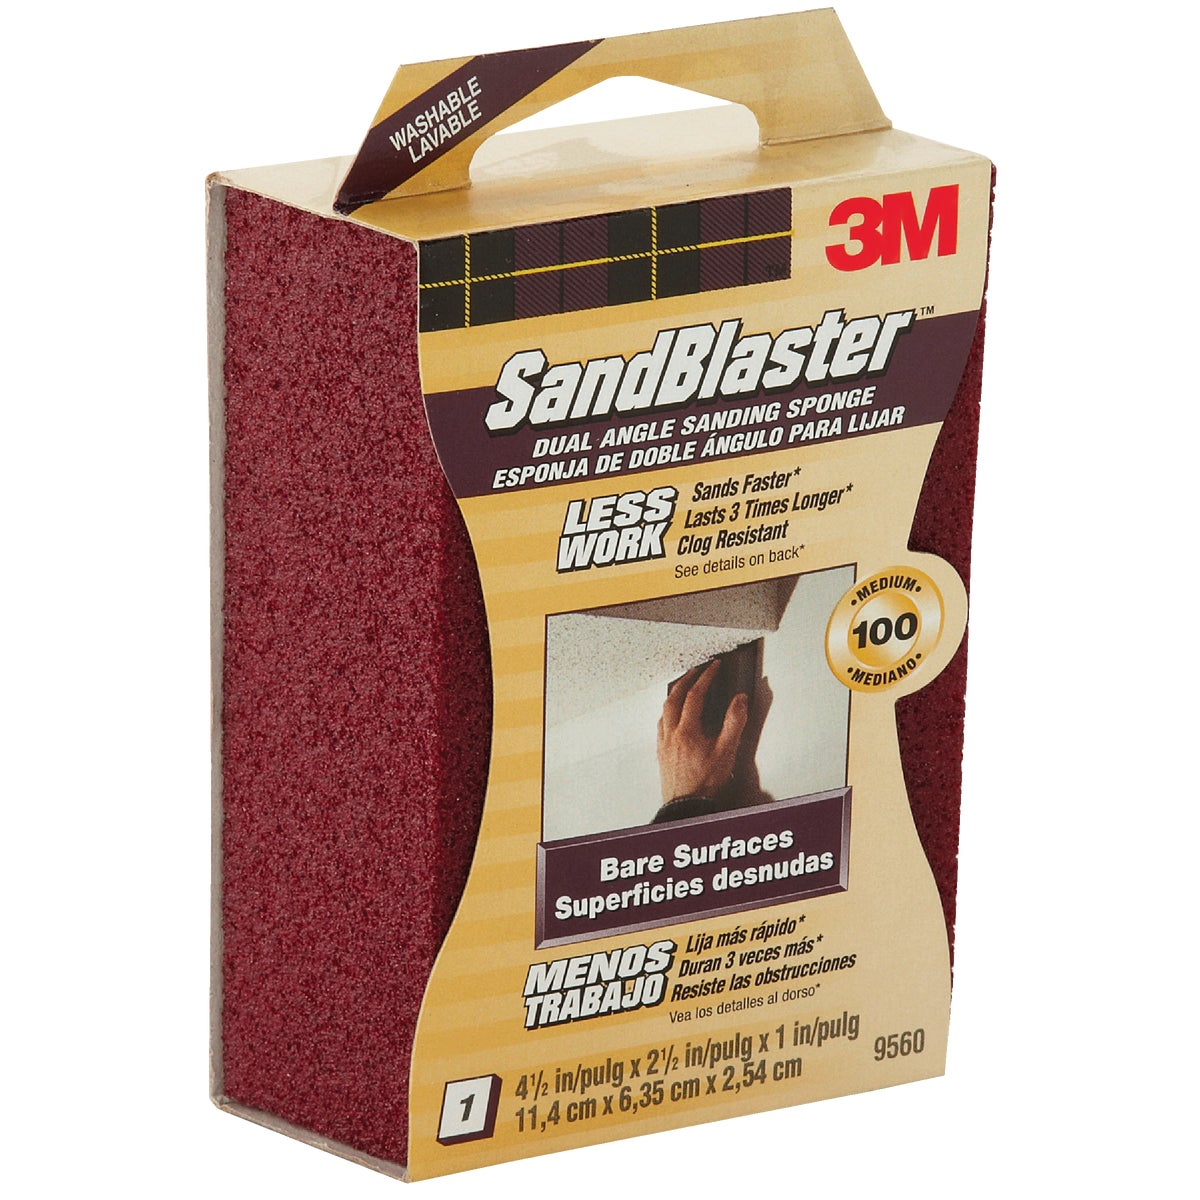 100G ANGLD SANDNG SPONGE - 9560 by 3m Co